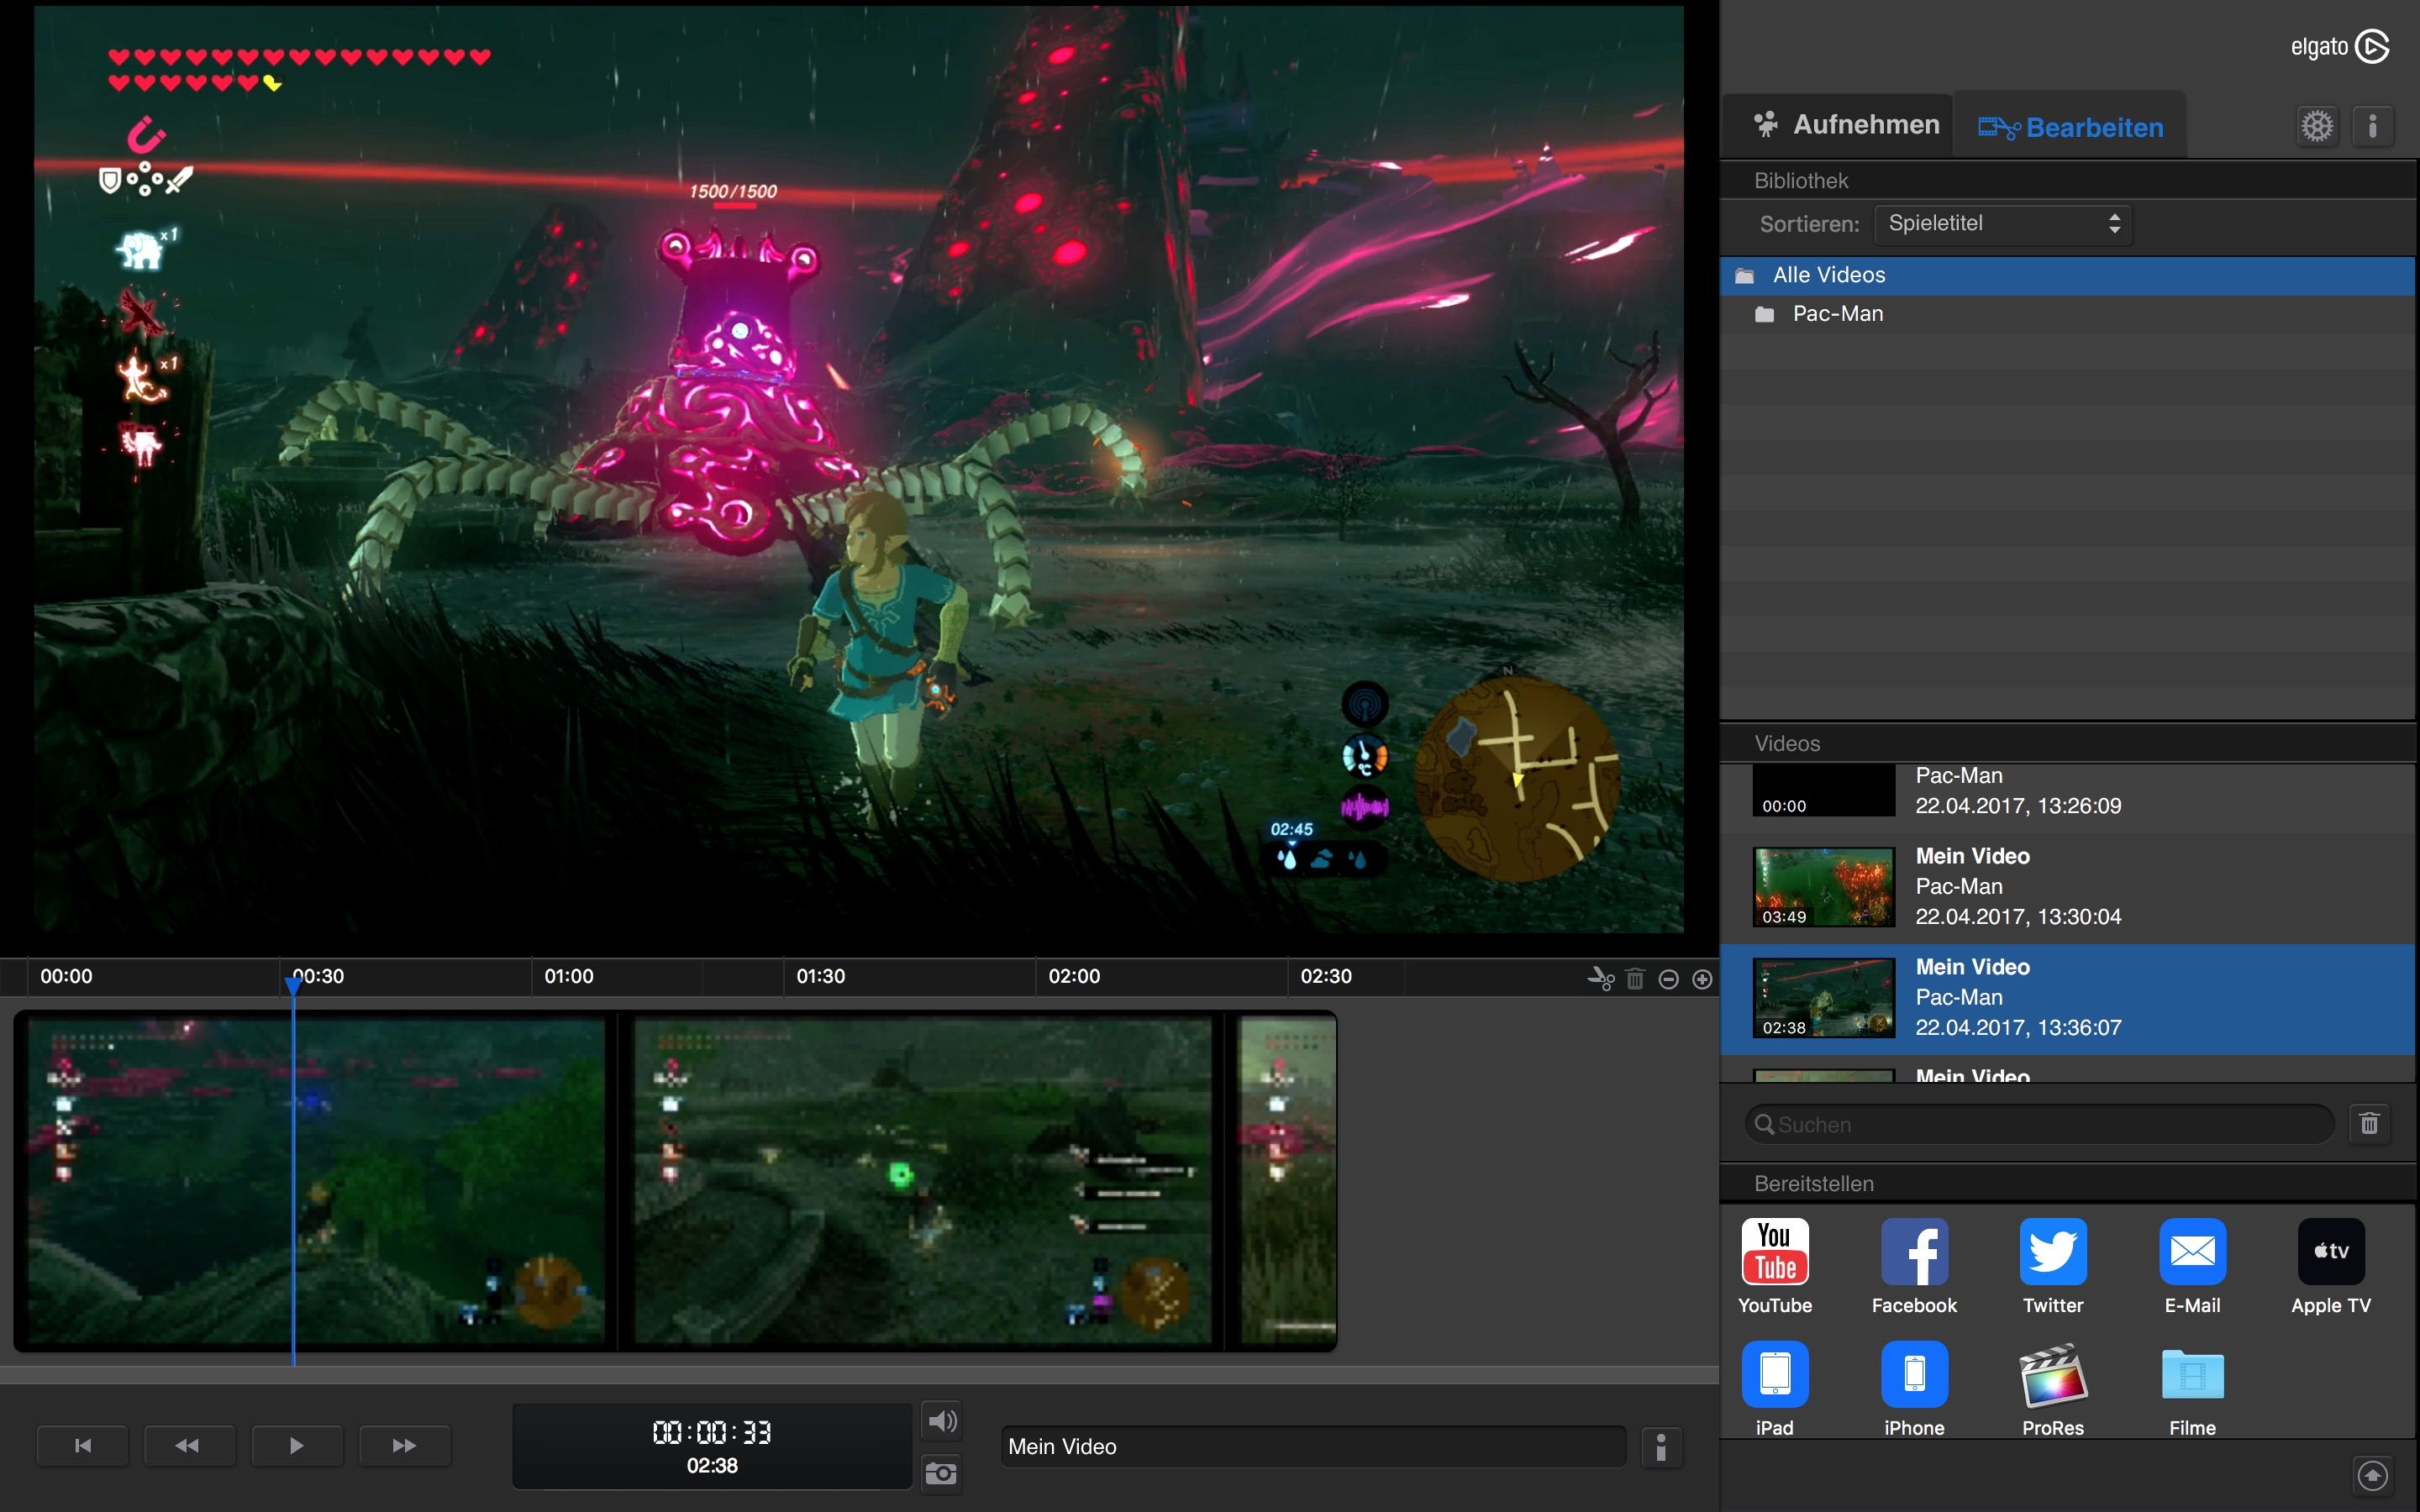 Im Test: Elgato Game Capture HD60 S – Let's-Play-Hardware